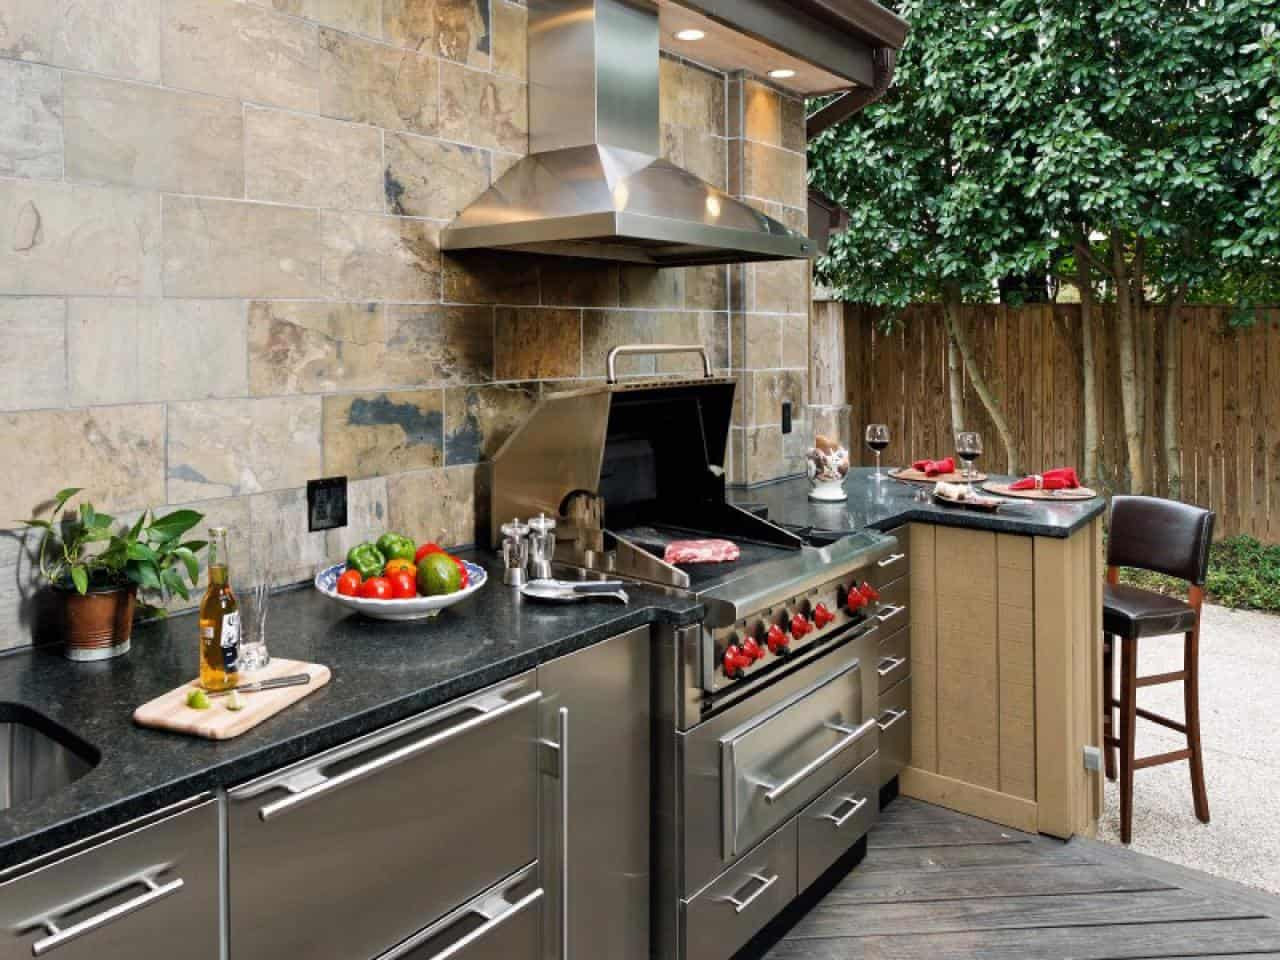 outdoor kitchen bar l shaped bench table ideas that will make you drool build it on your own